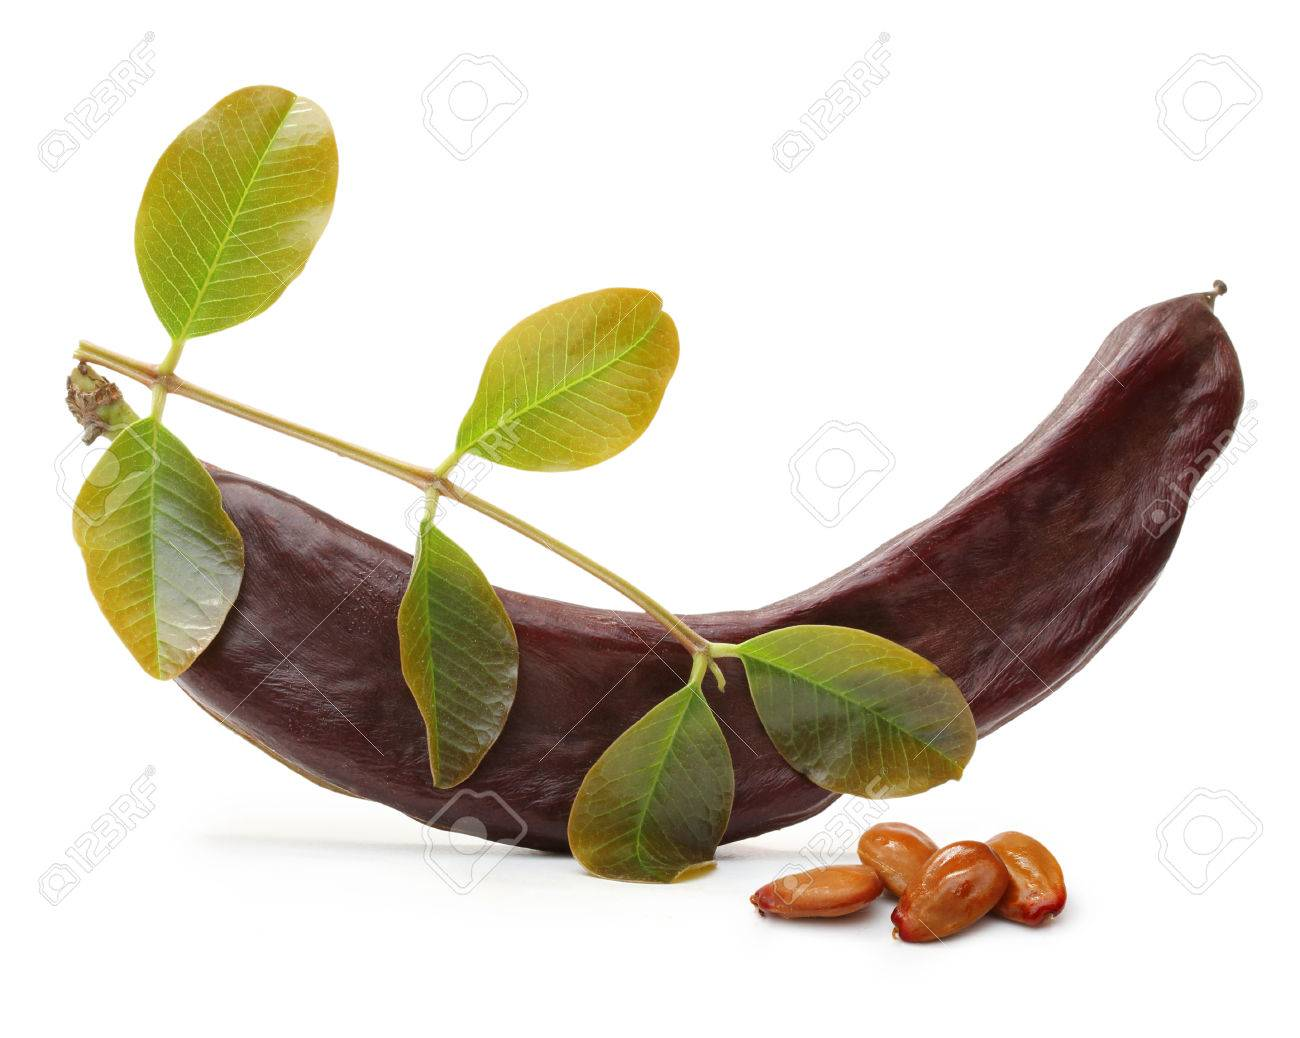 Carob pod and seeds isolated on a white background - 61281433